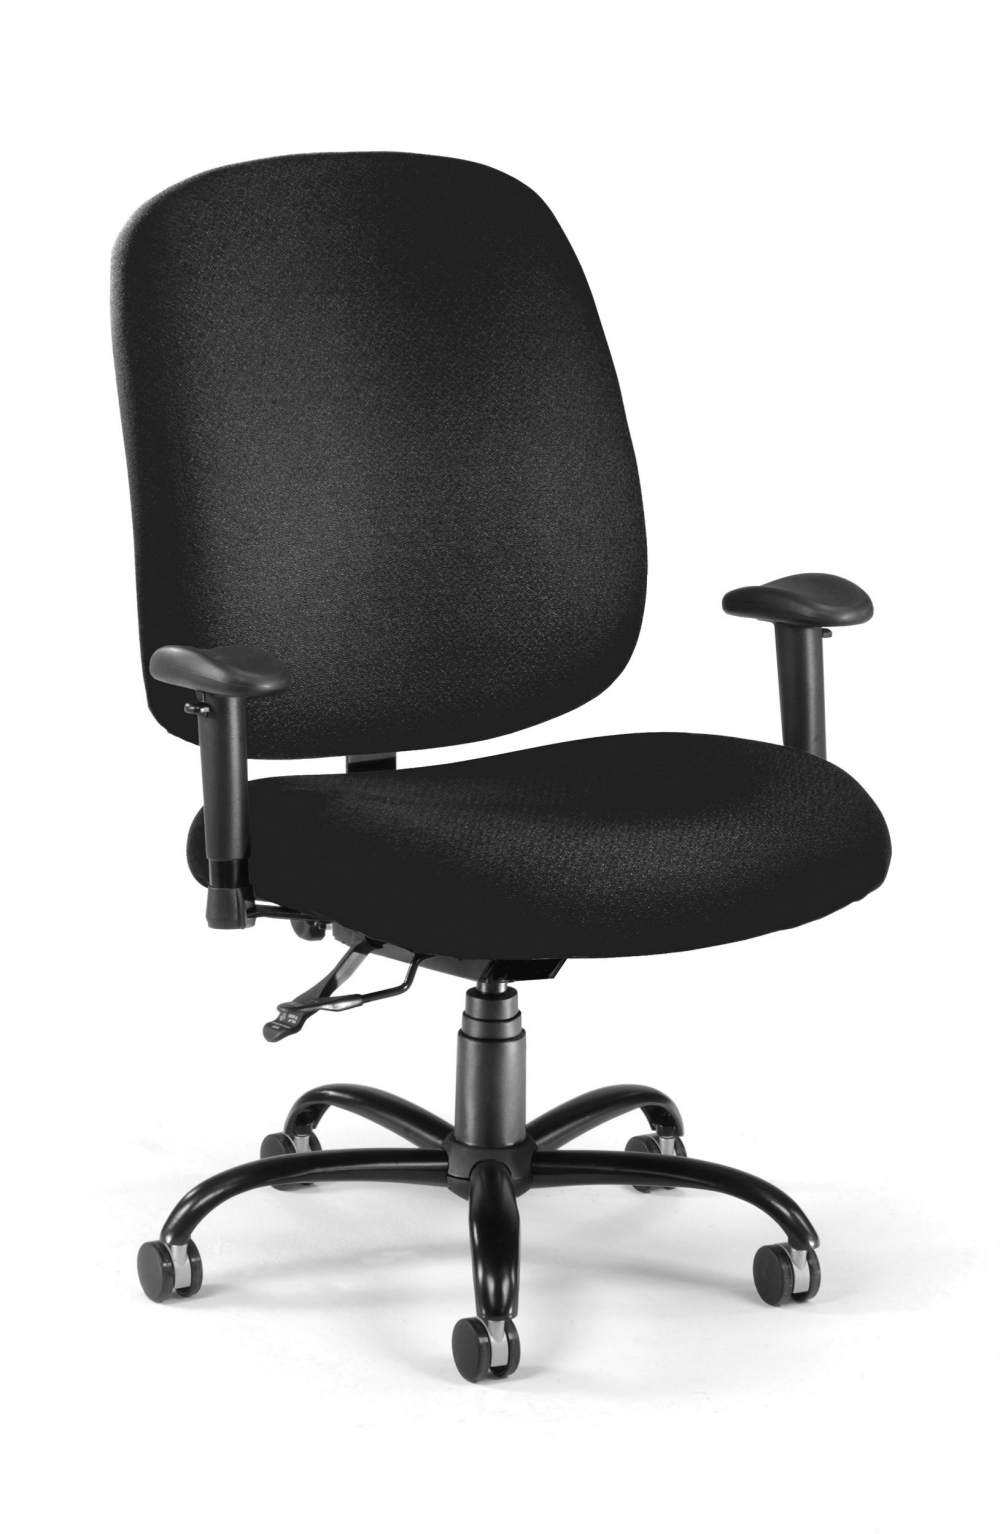 Big and tall desk chairs cub 700 aa6 236 black mfo